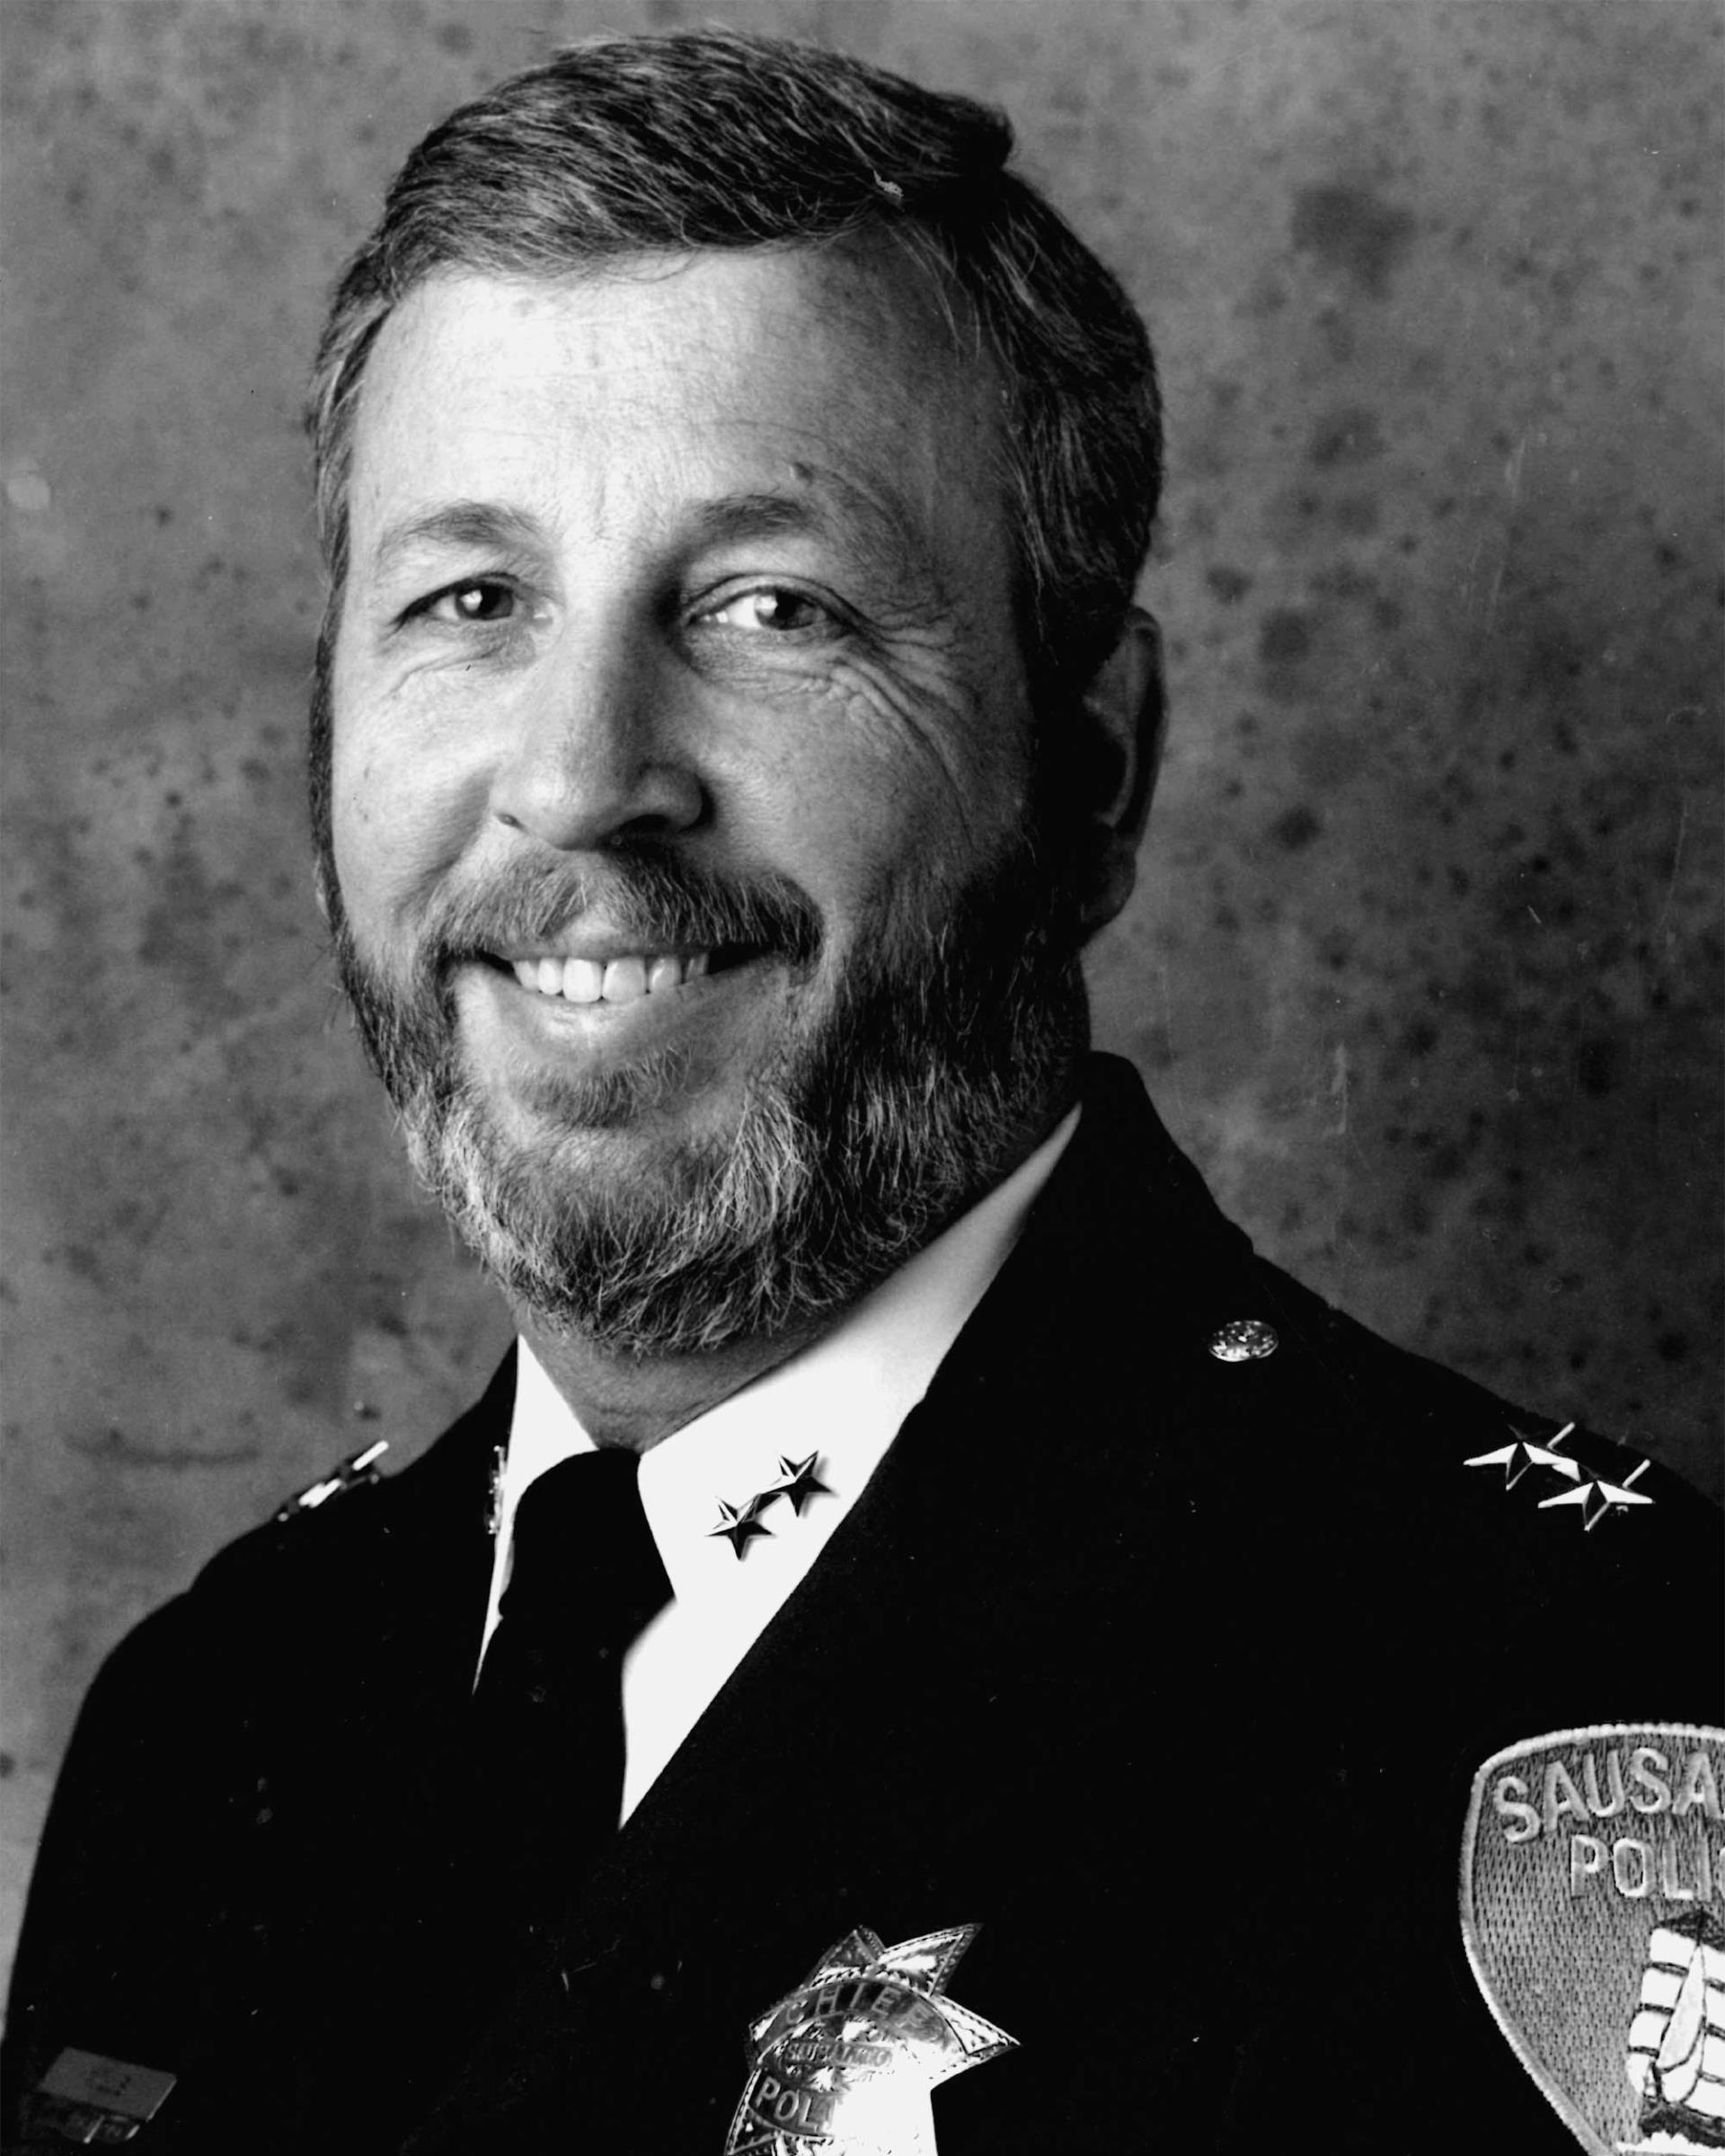 Chief Stephen M. Willis (1995-2000)